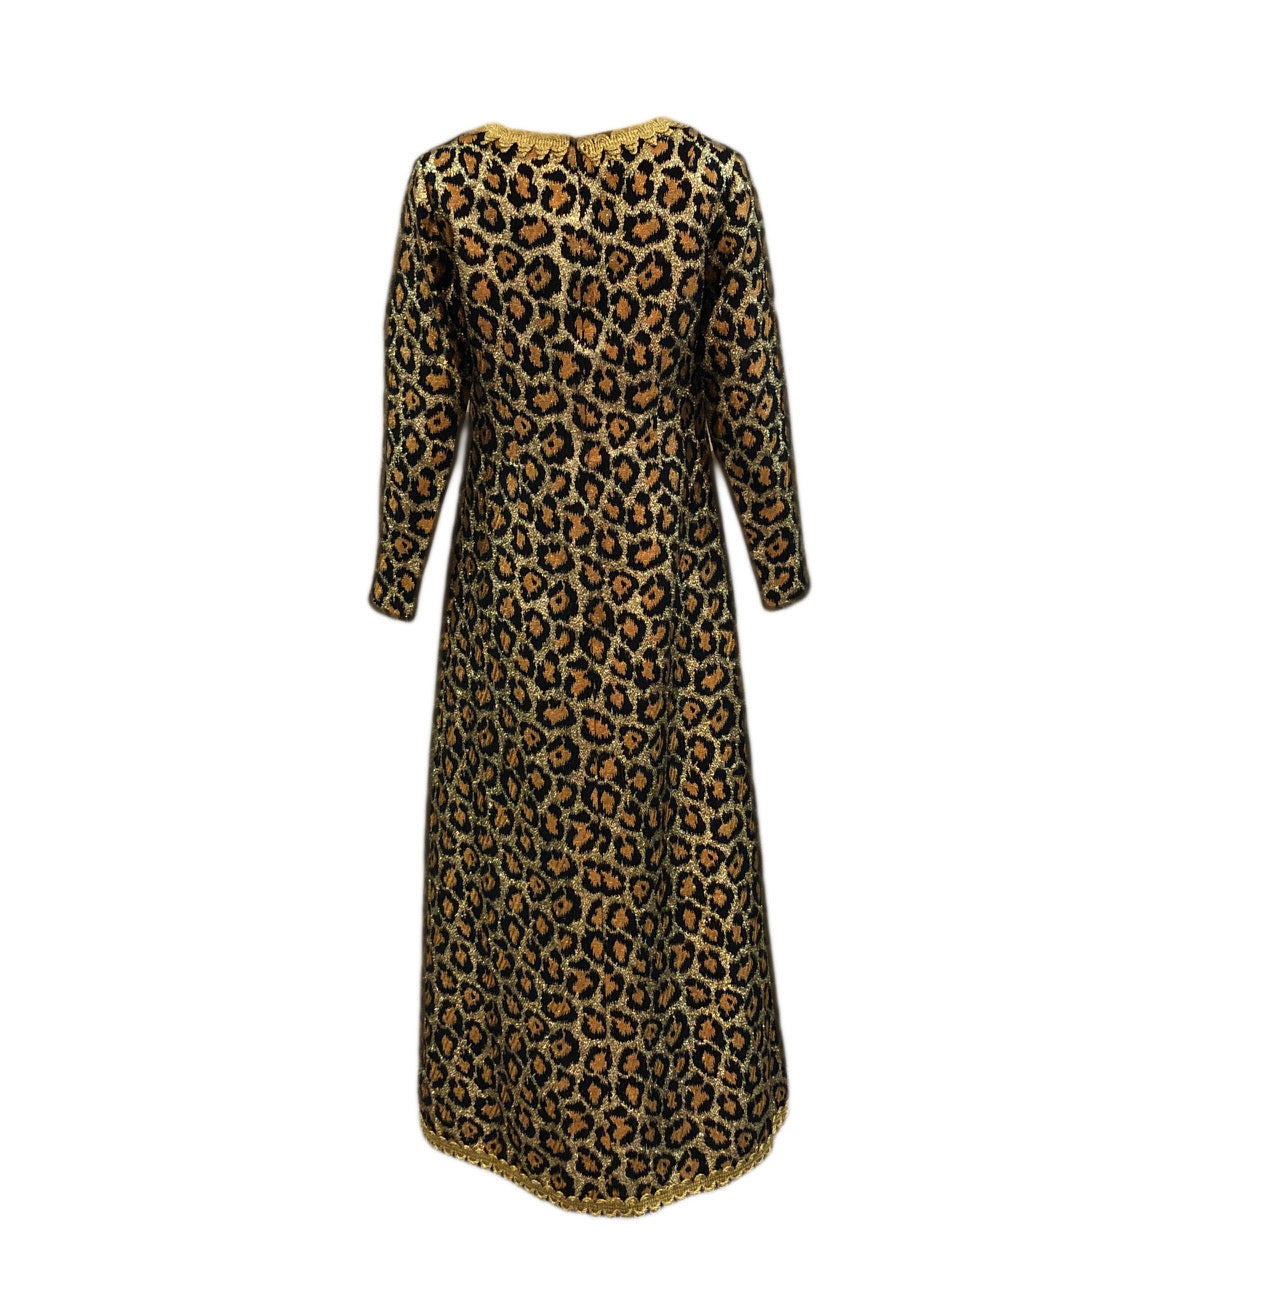 Outrageous 1960 Leopard Print Lame Gown Back 3 of 5